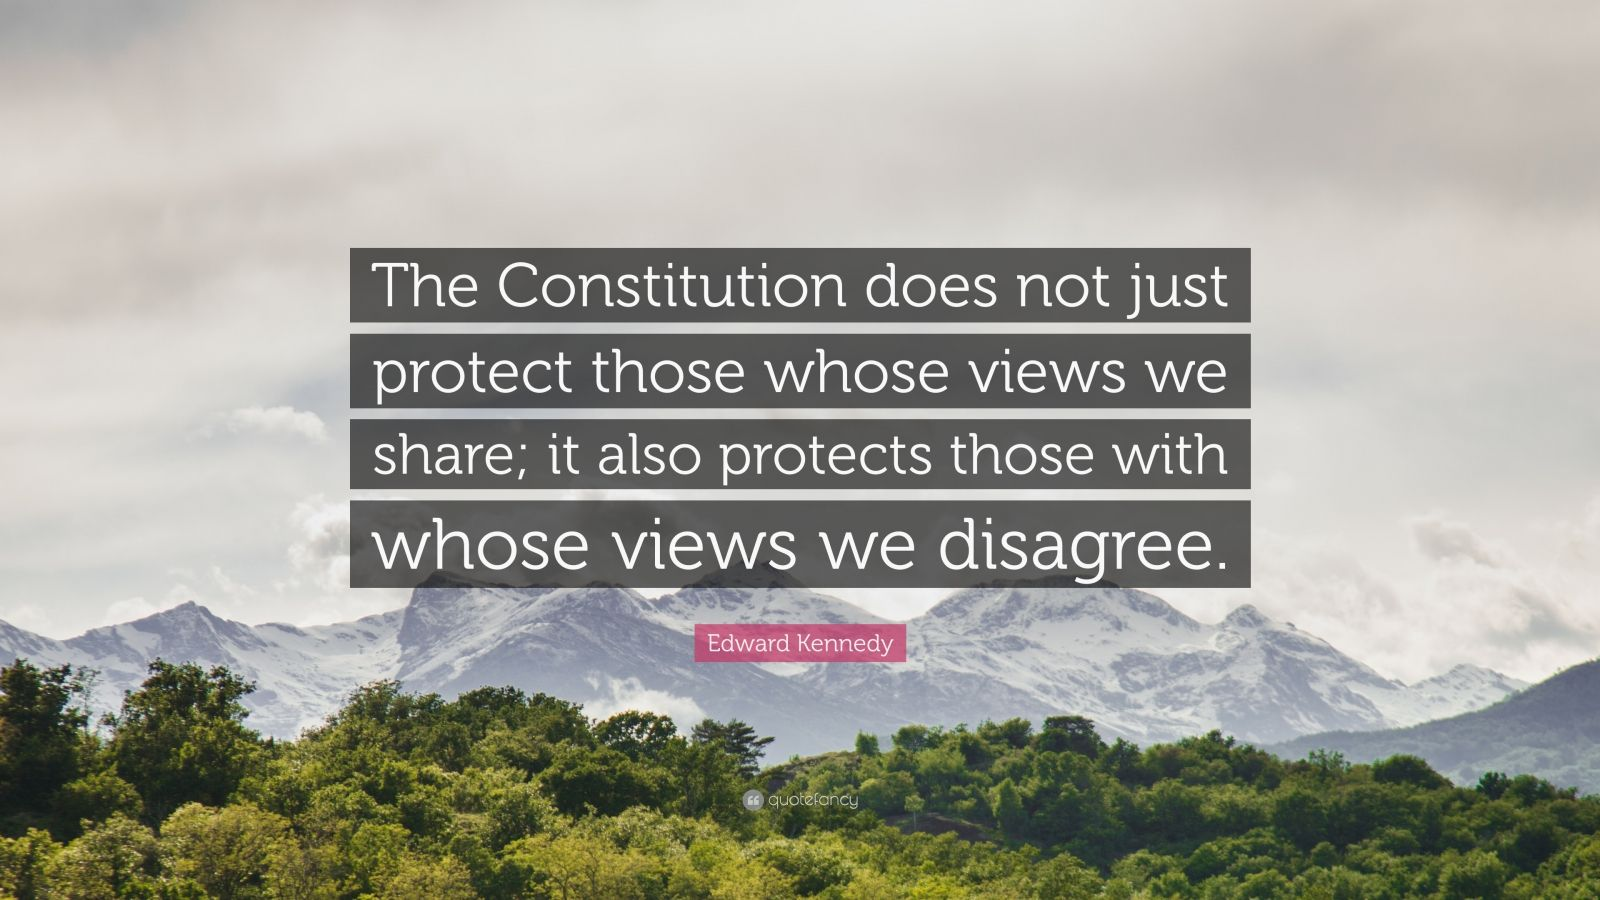 """Edward Kennedy Quote: """"The Constitution does not just protect those whose views we share; it also protects those with whose views we disagree."""""""